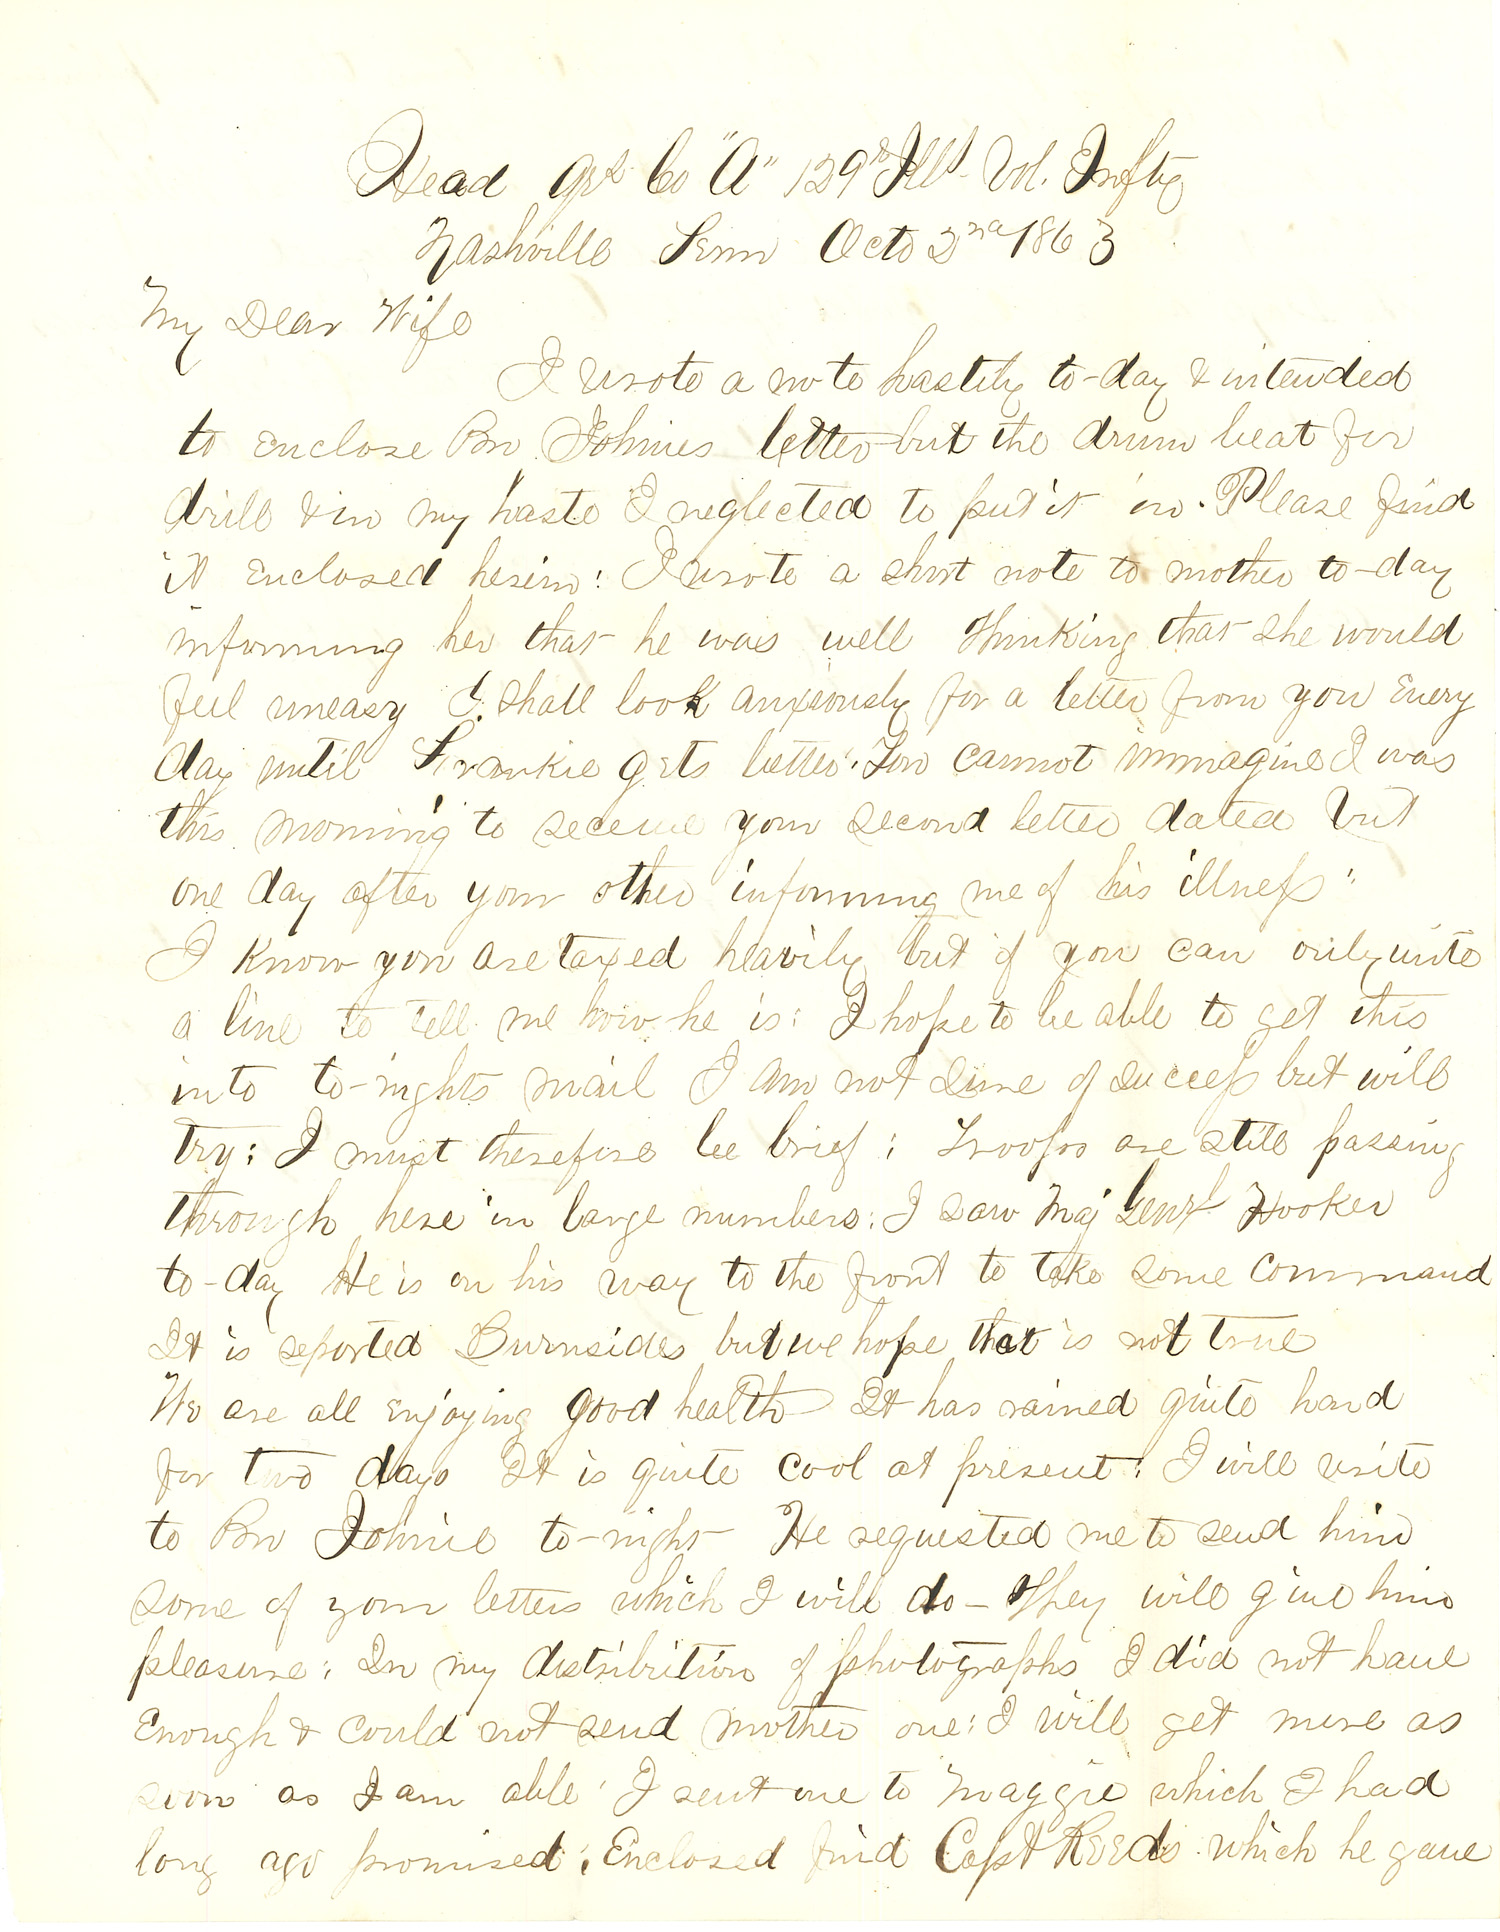 Joseph Culver Letter, October 2, 1863, Letter 2, Page 1